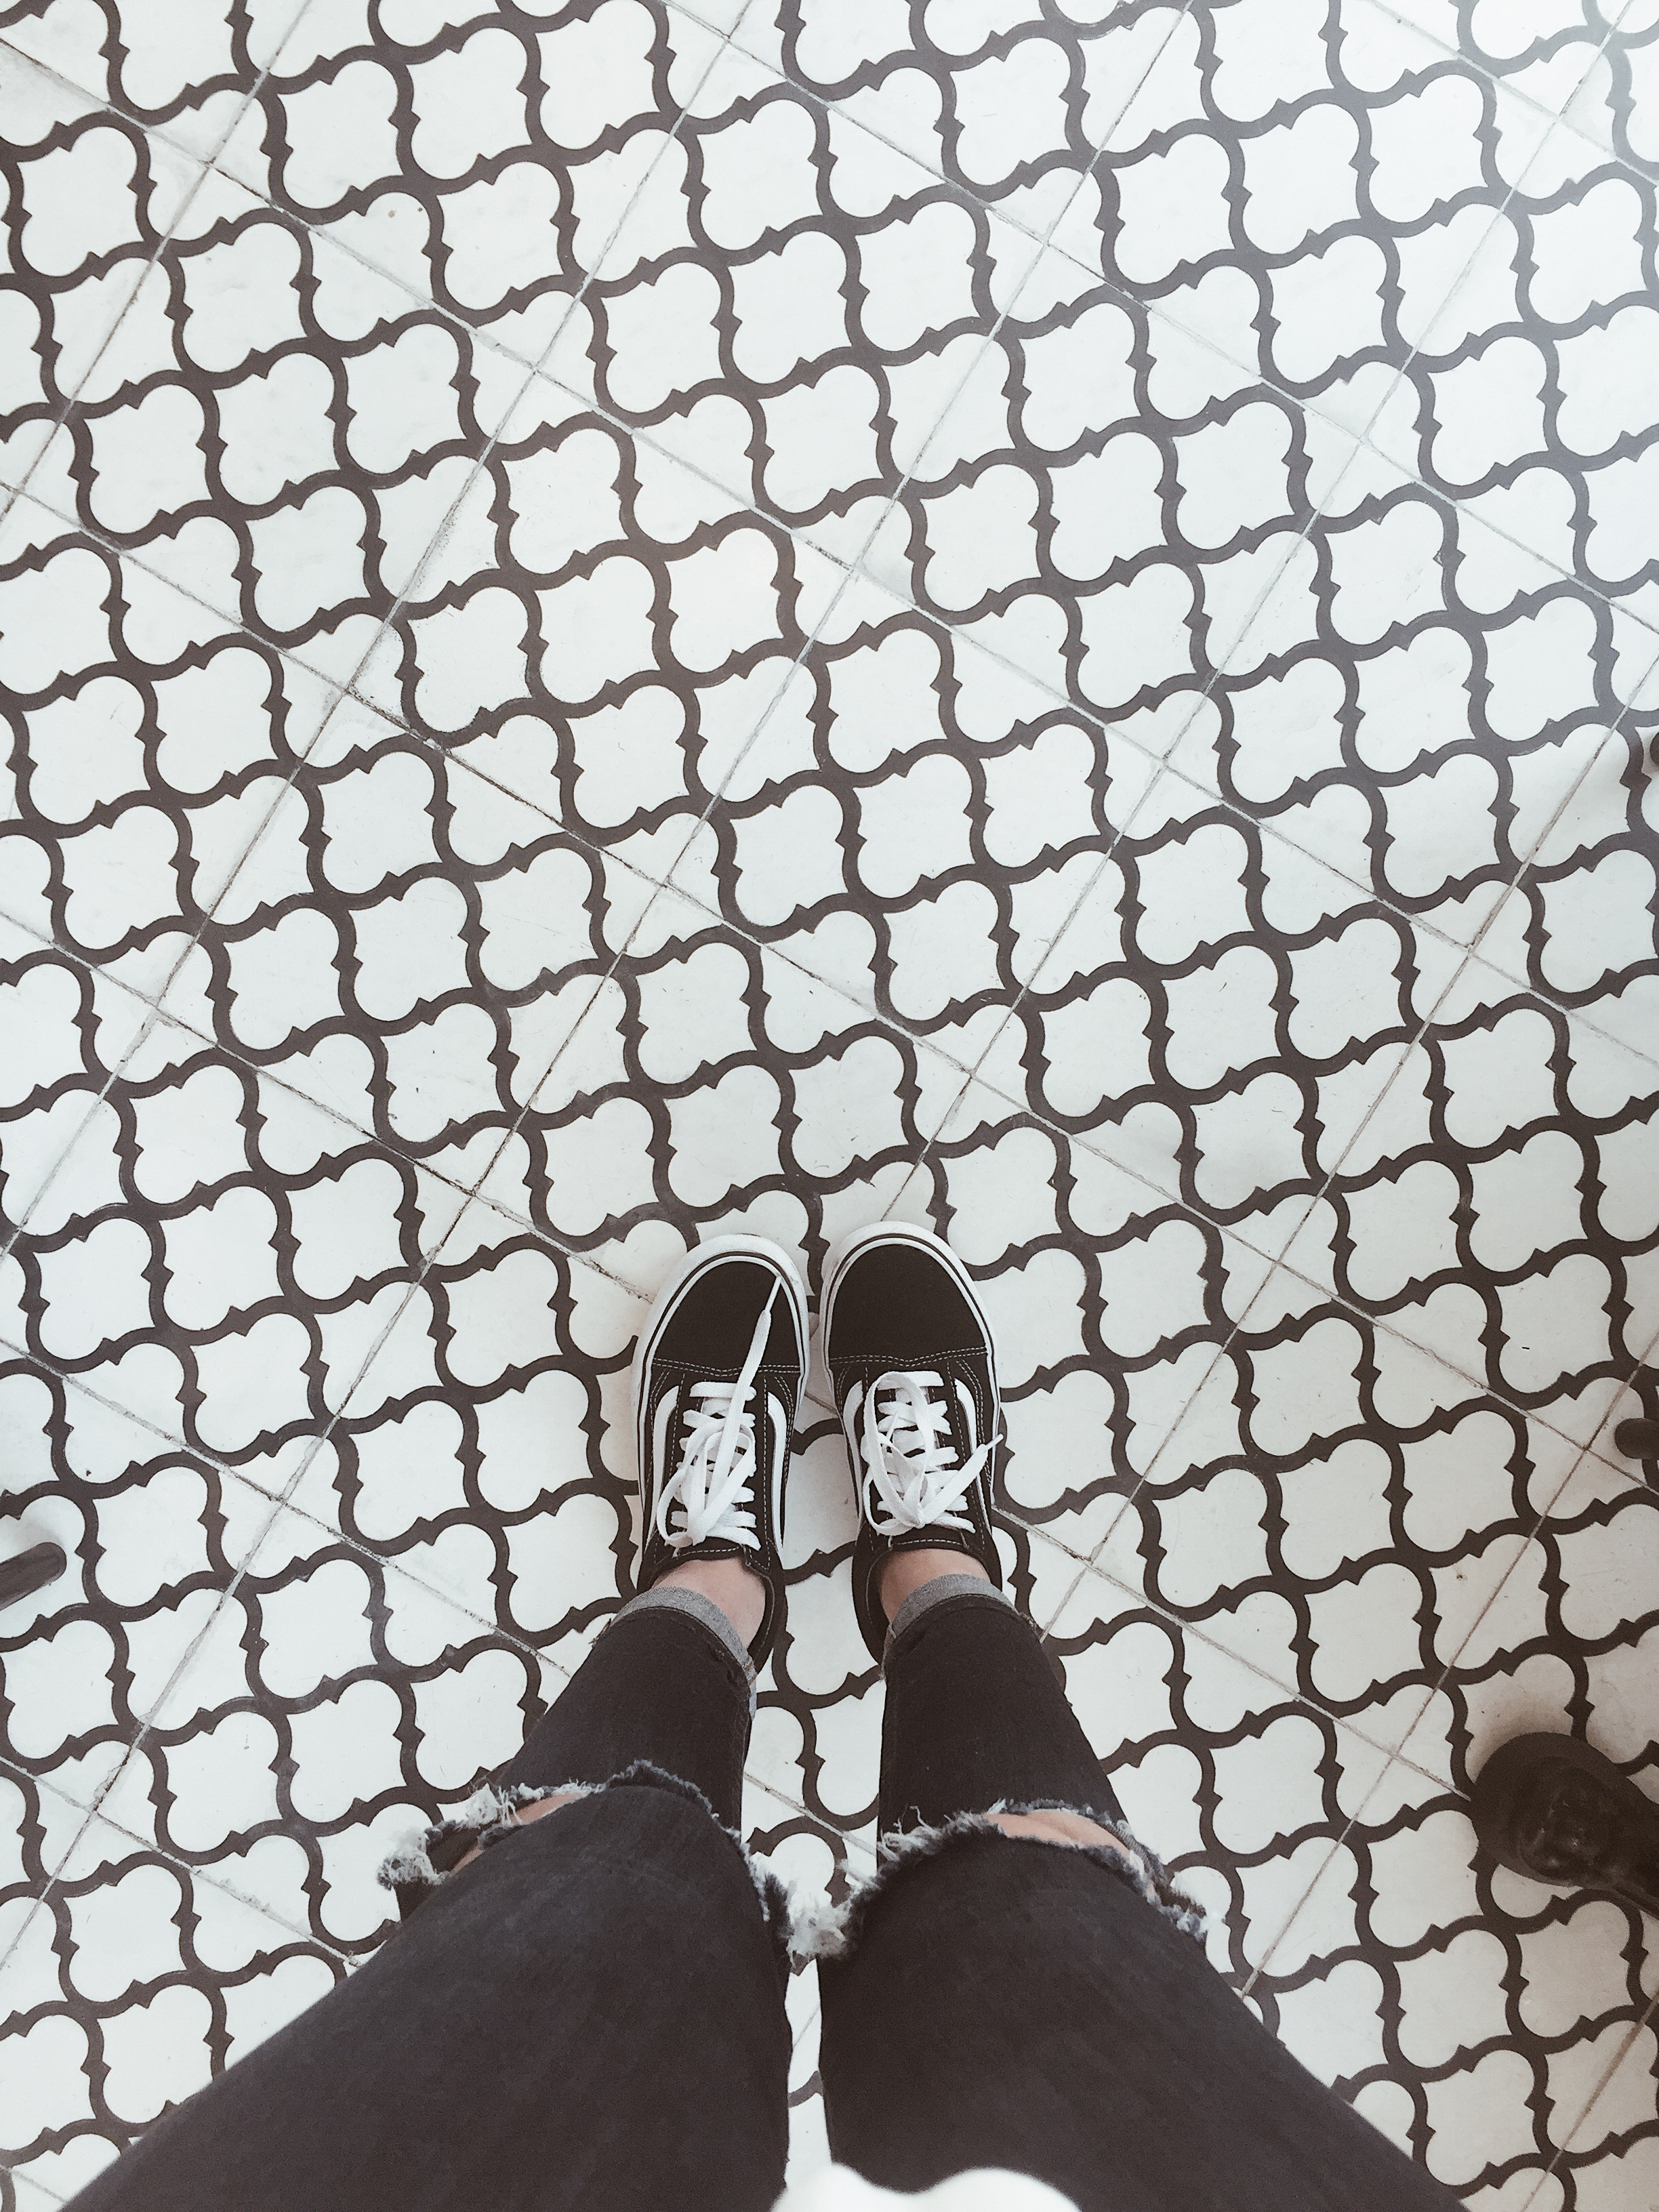 - Loved the tile design at Carrera cafe. Perfect shoe photo op.